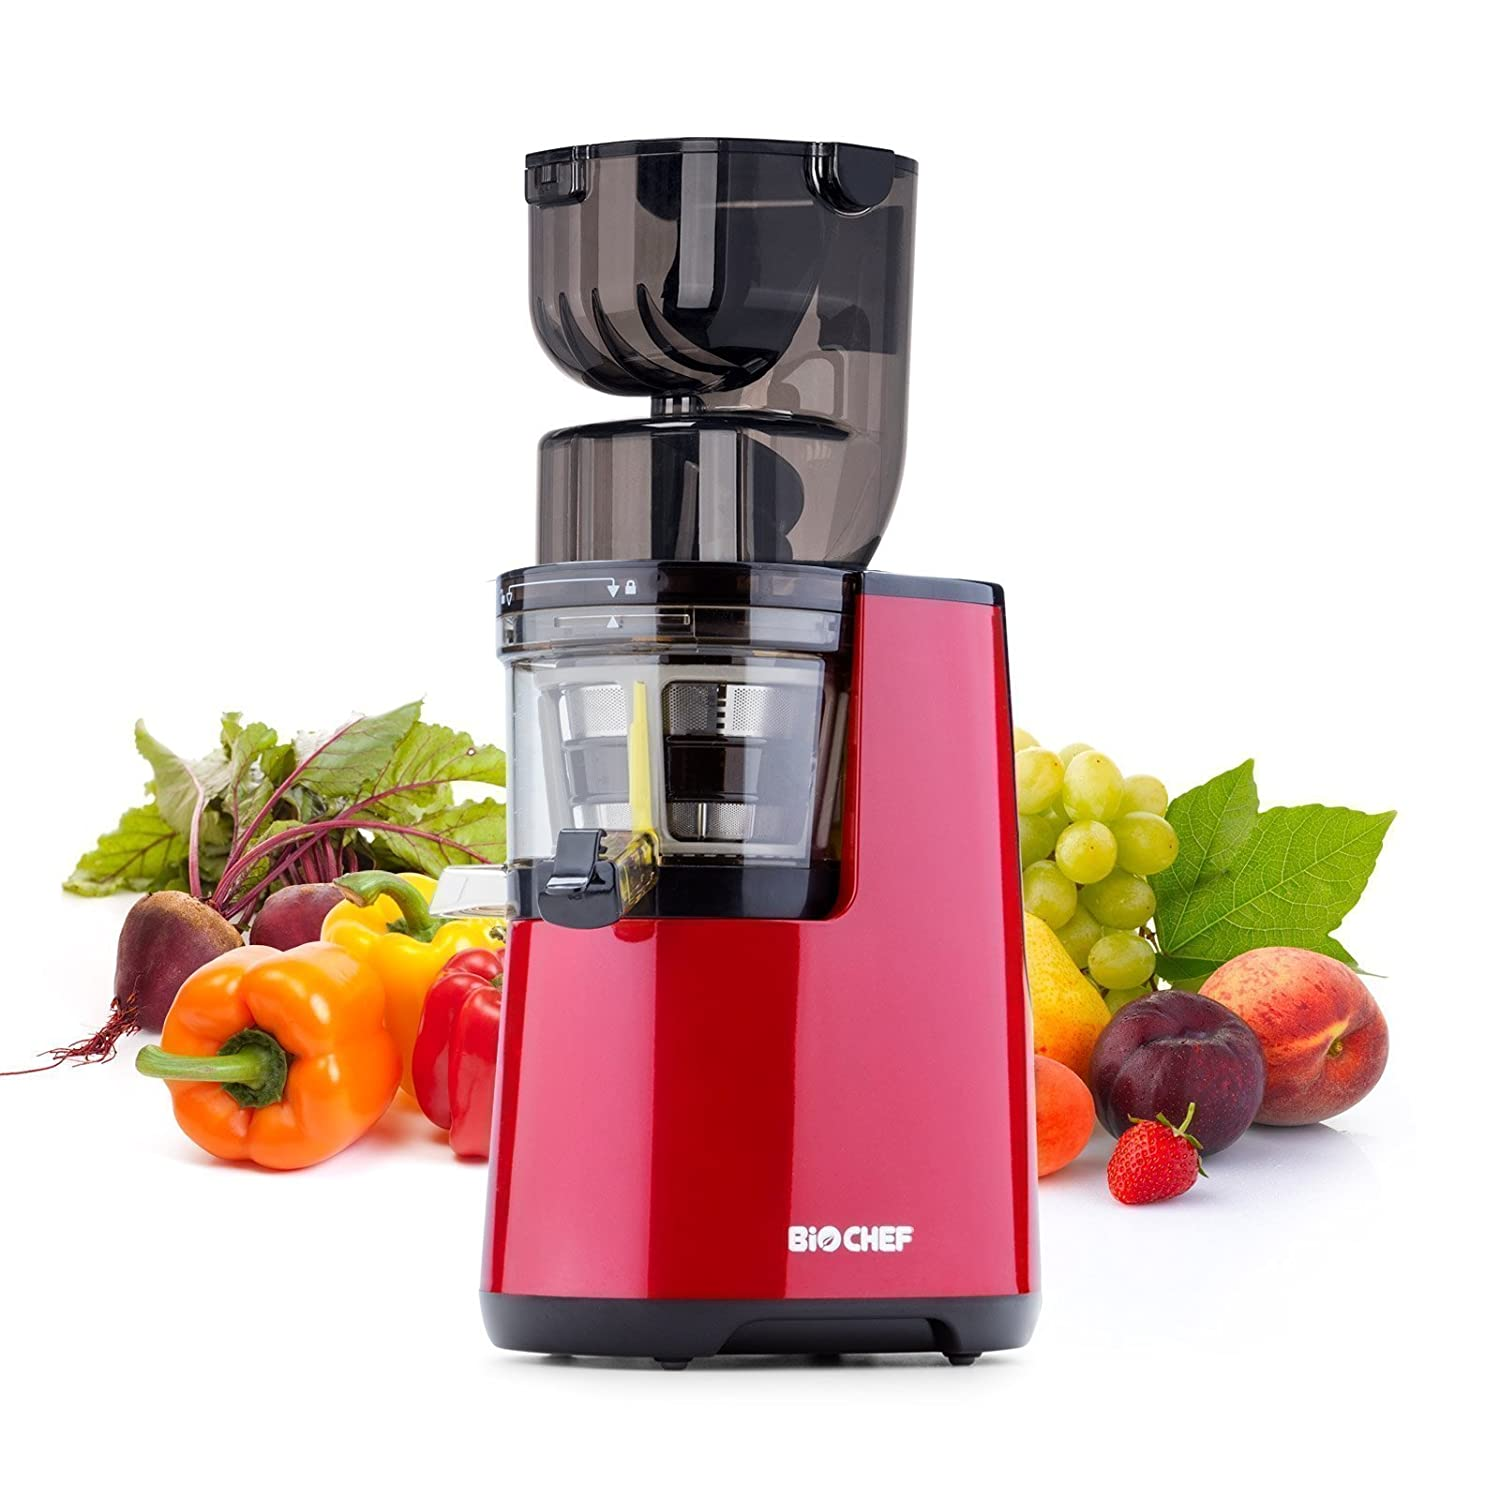 BioChef Atlas Whole Slow Juicer PRO - 300W / 45 RPM, Wide Feed Juicer, Masticating Cold Press Juicer - LIFETIME Motor Warranty (Red)